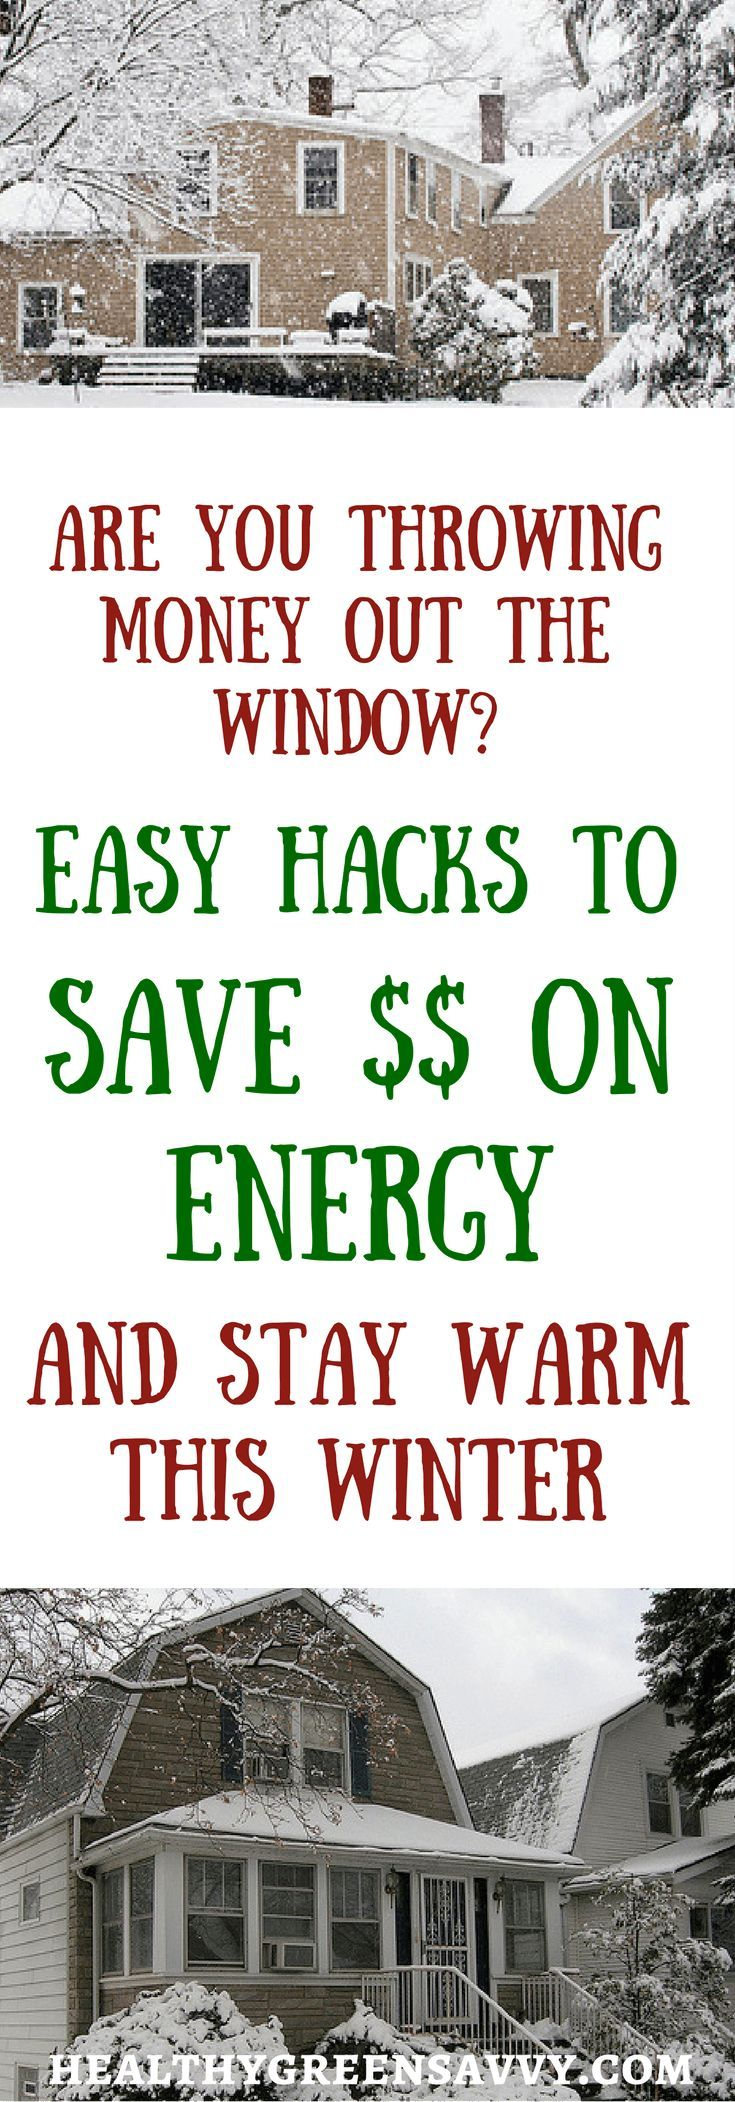 1000 images about better ways to do things on pinterest for Ways you can save energy